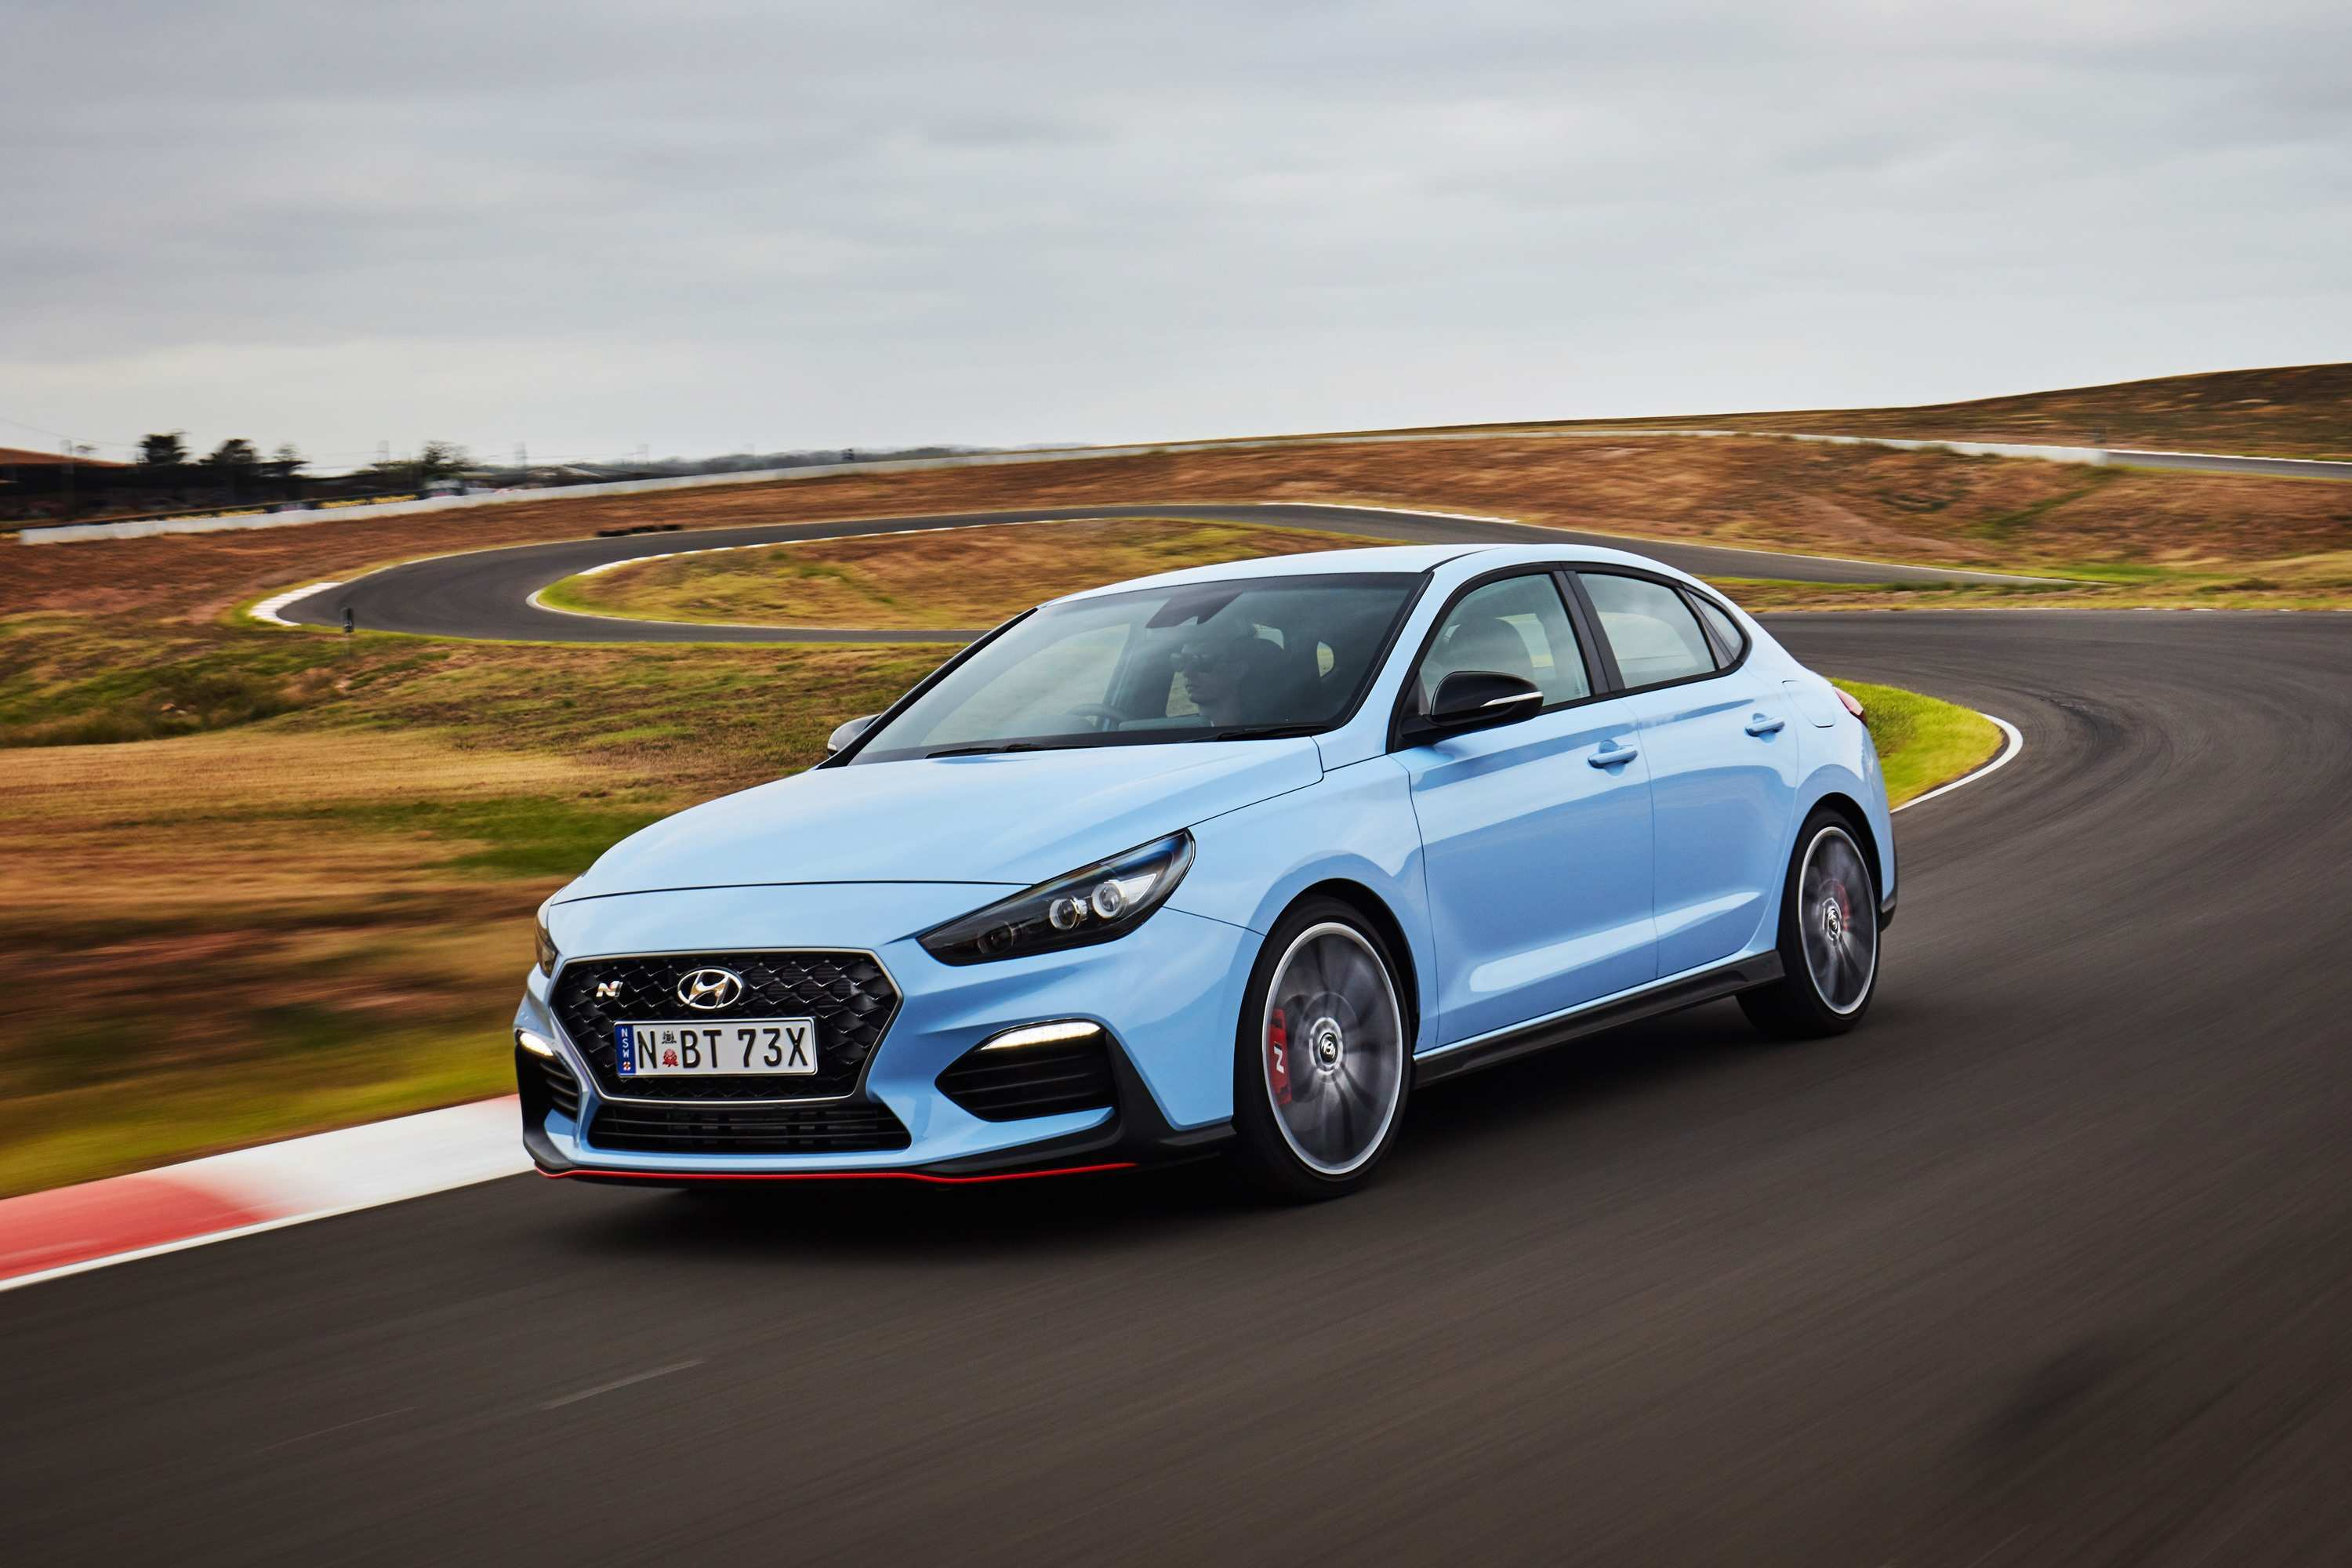 42 The Best 2019 Hyundai I30 Interior